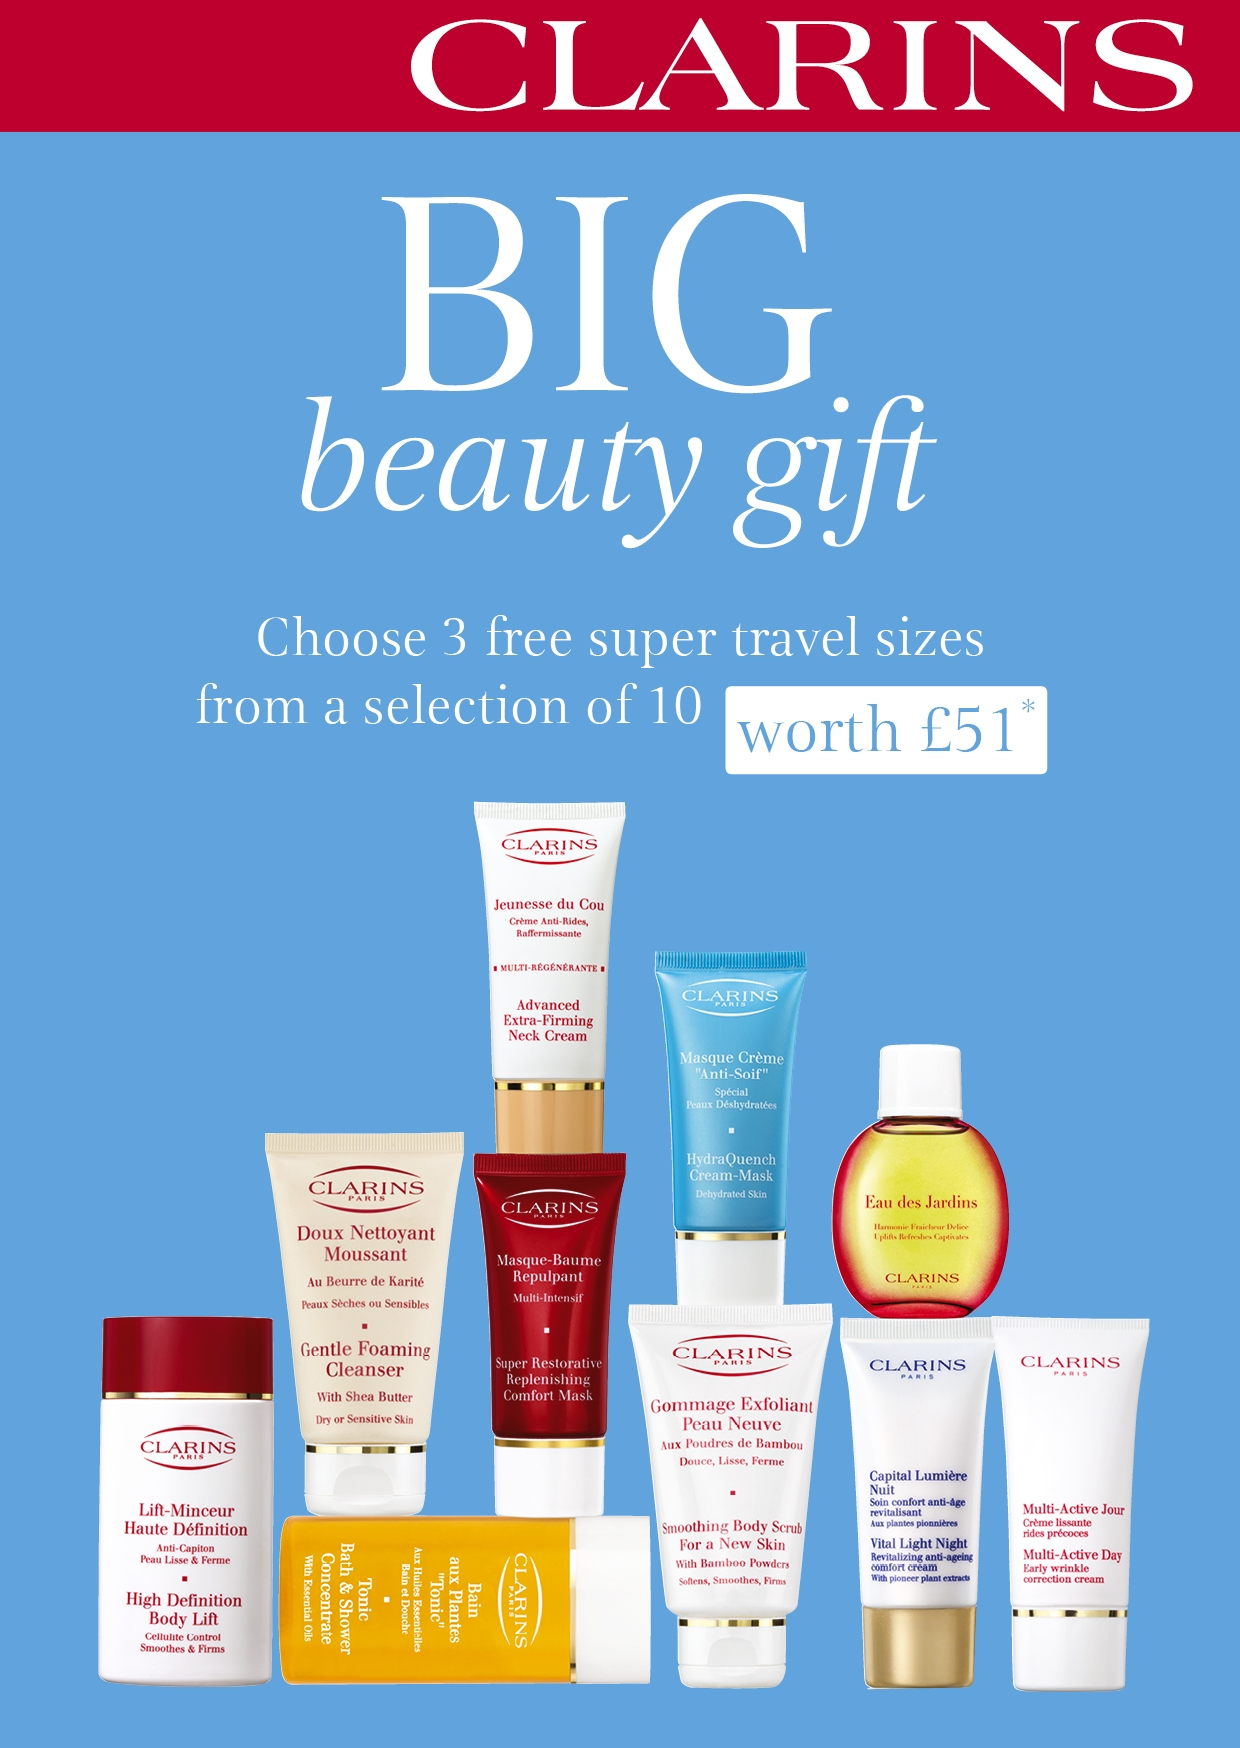 One gift per customer. To enjoy this offer, spend $ or more on Clarins products, then enter the promo code CRACKERS Gift will be added to your shopping bag once you applied the promo code. Not available in conjunction with any other offer or gift set. No cash redemption possible.